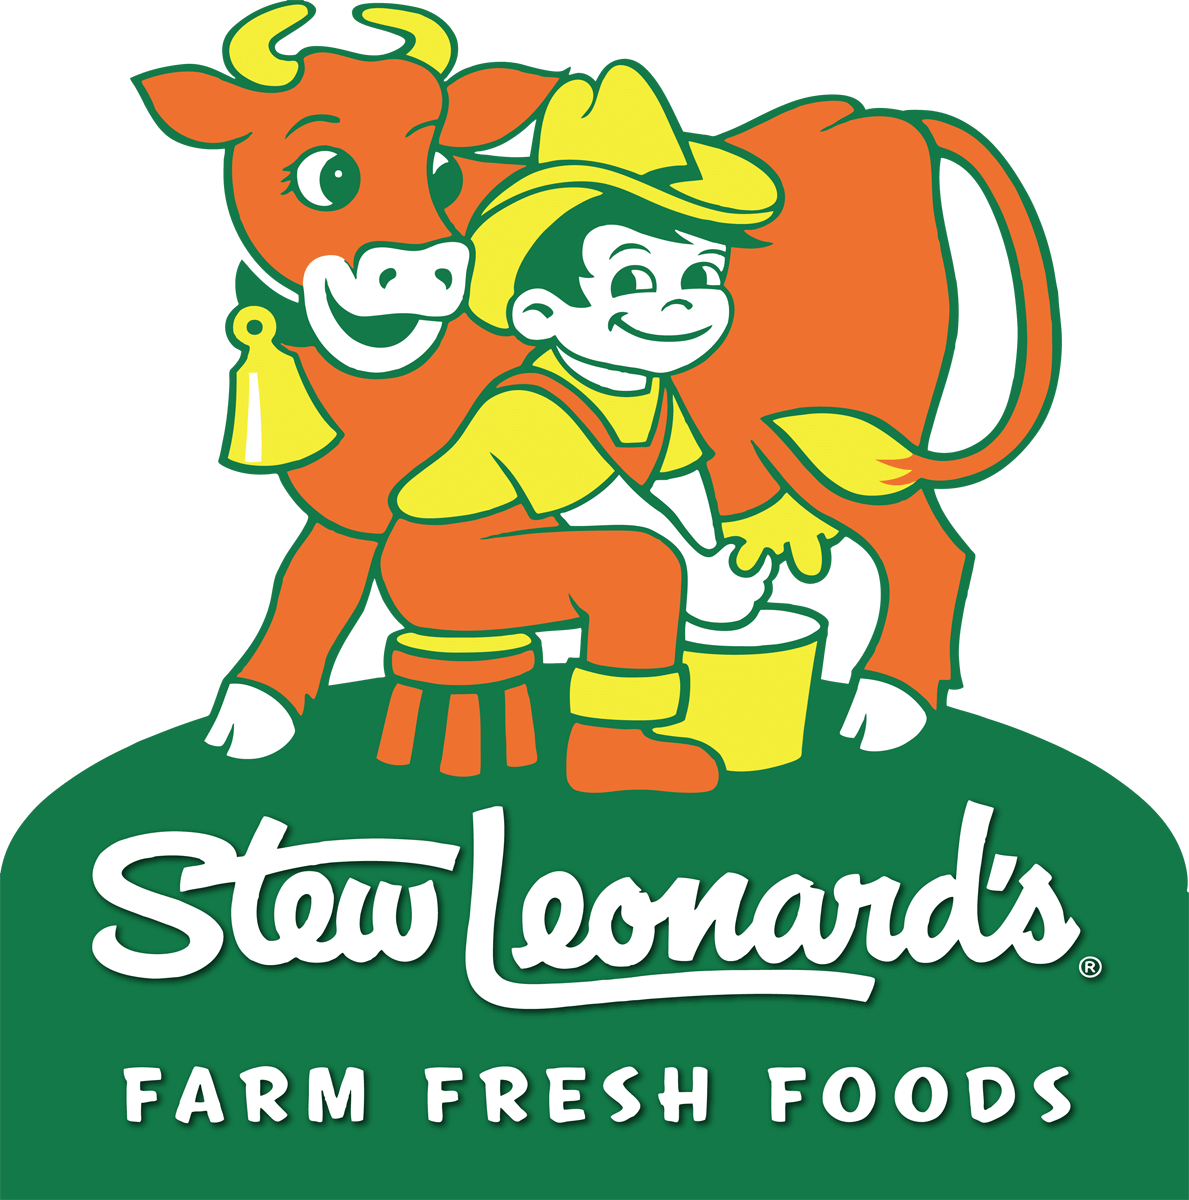 Stew Leonards Coupon Codes